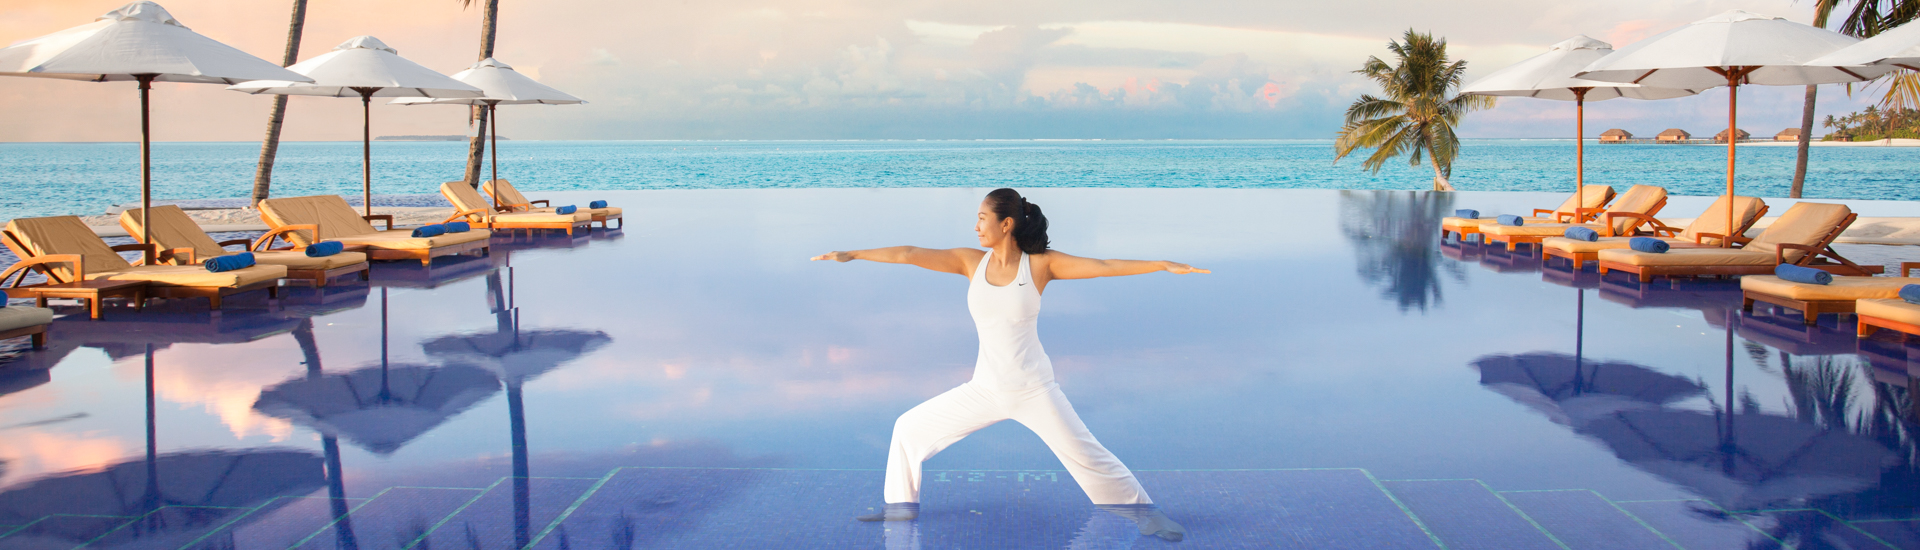 Conrad Maldives infinity view pool with yoga